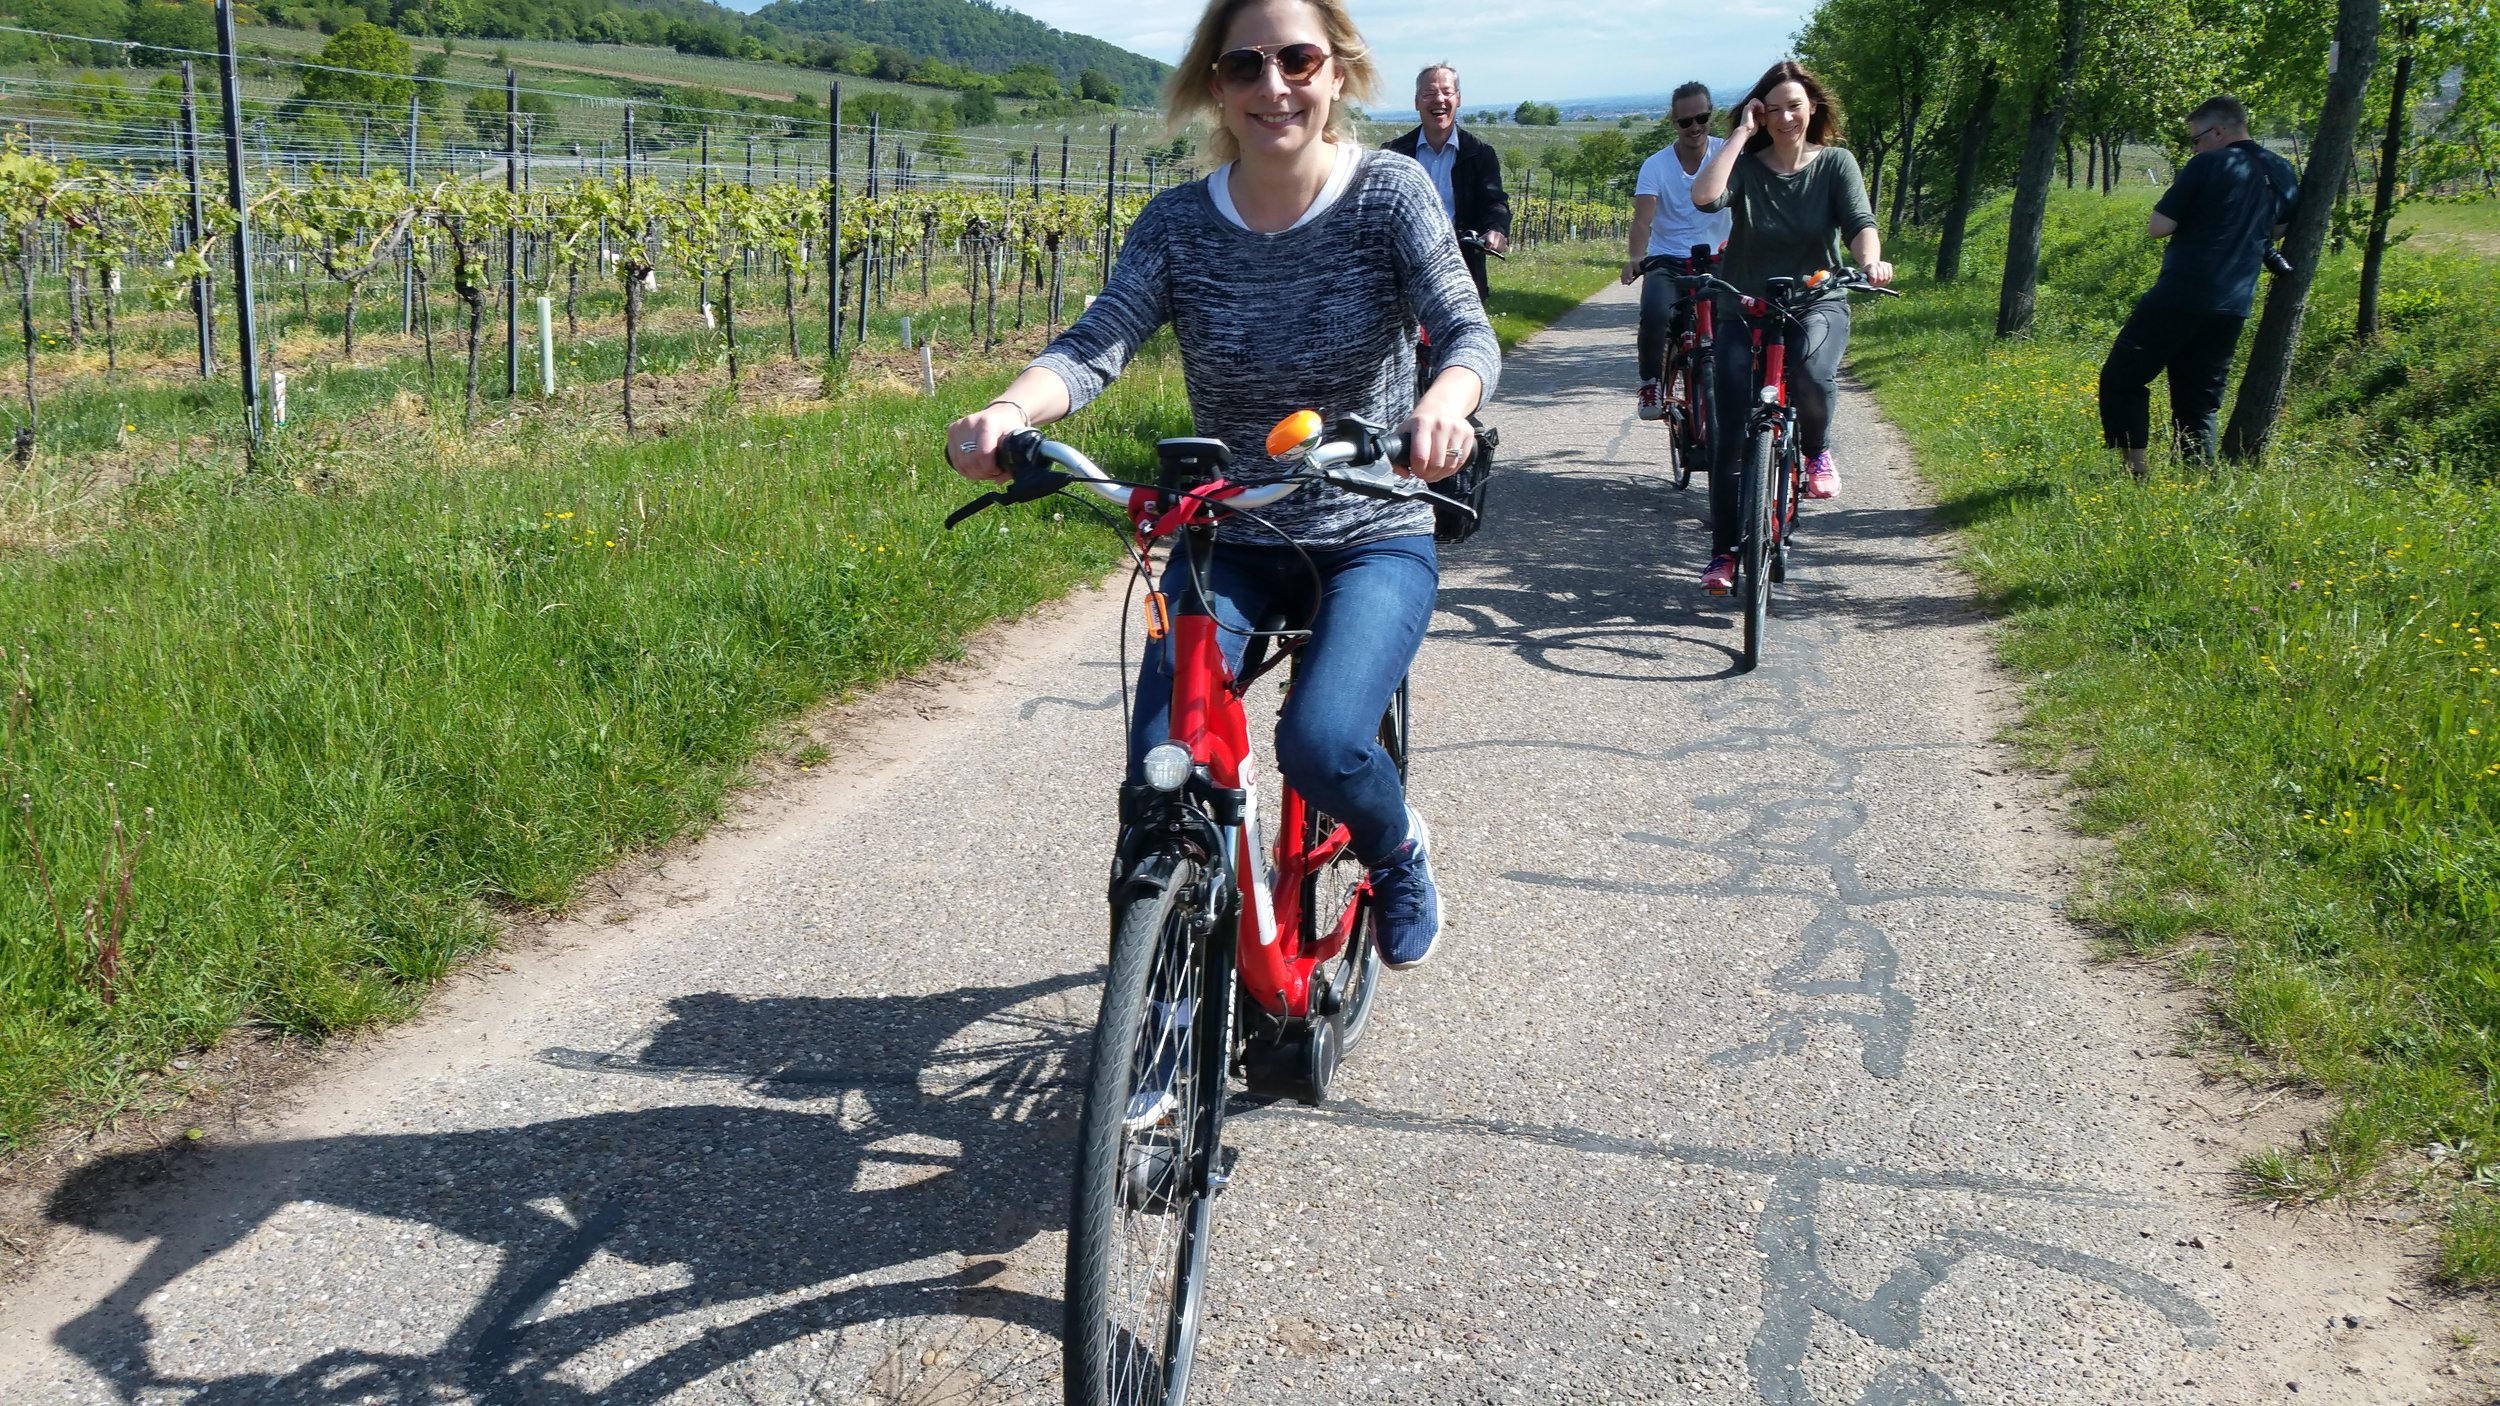 E-bike riding through the vineyards of German's Pfalz region.